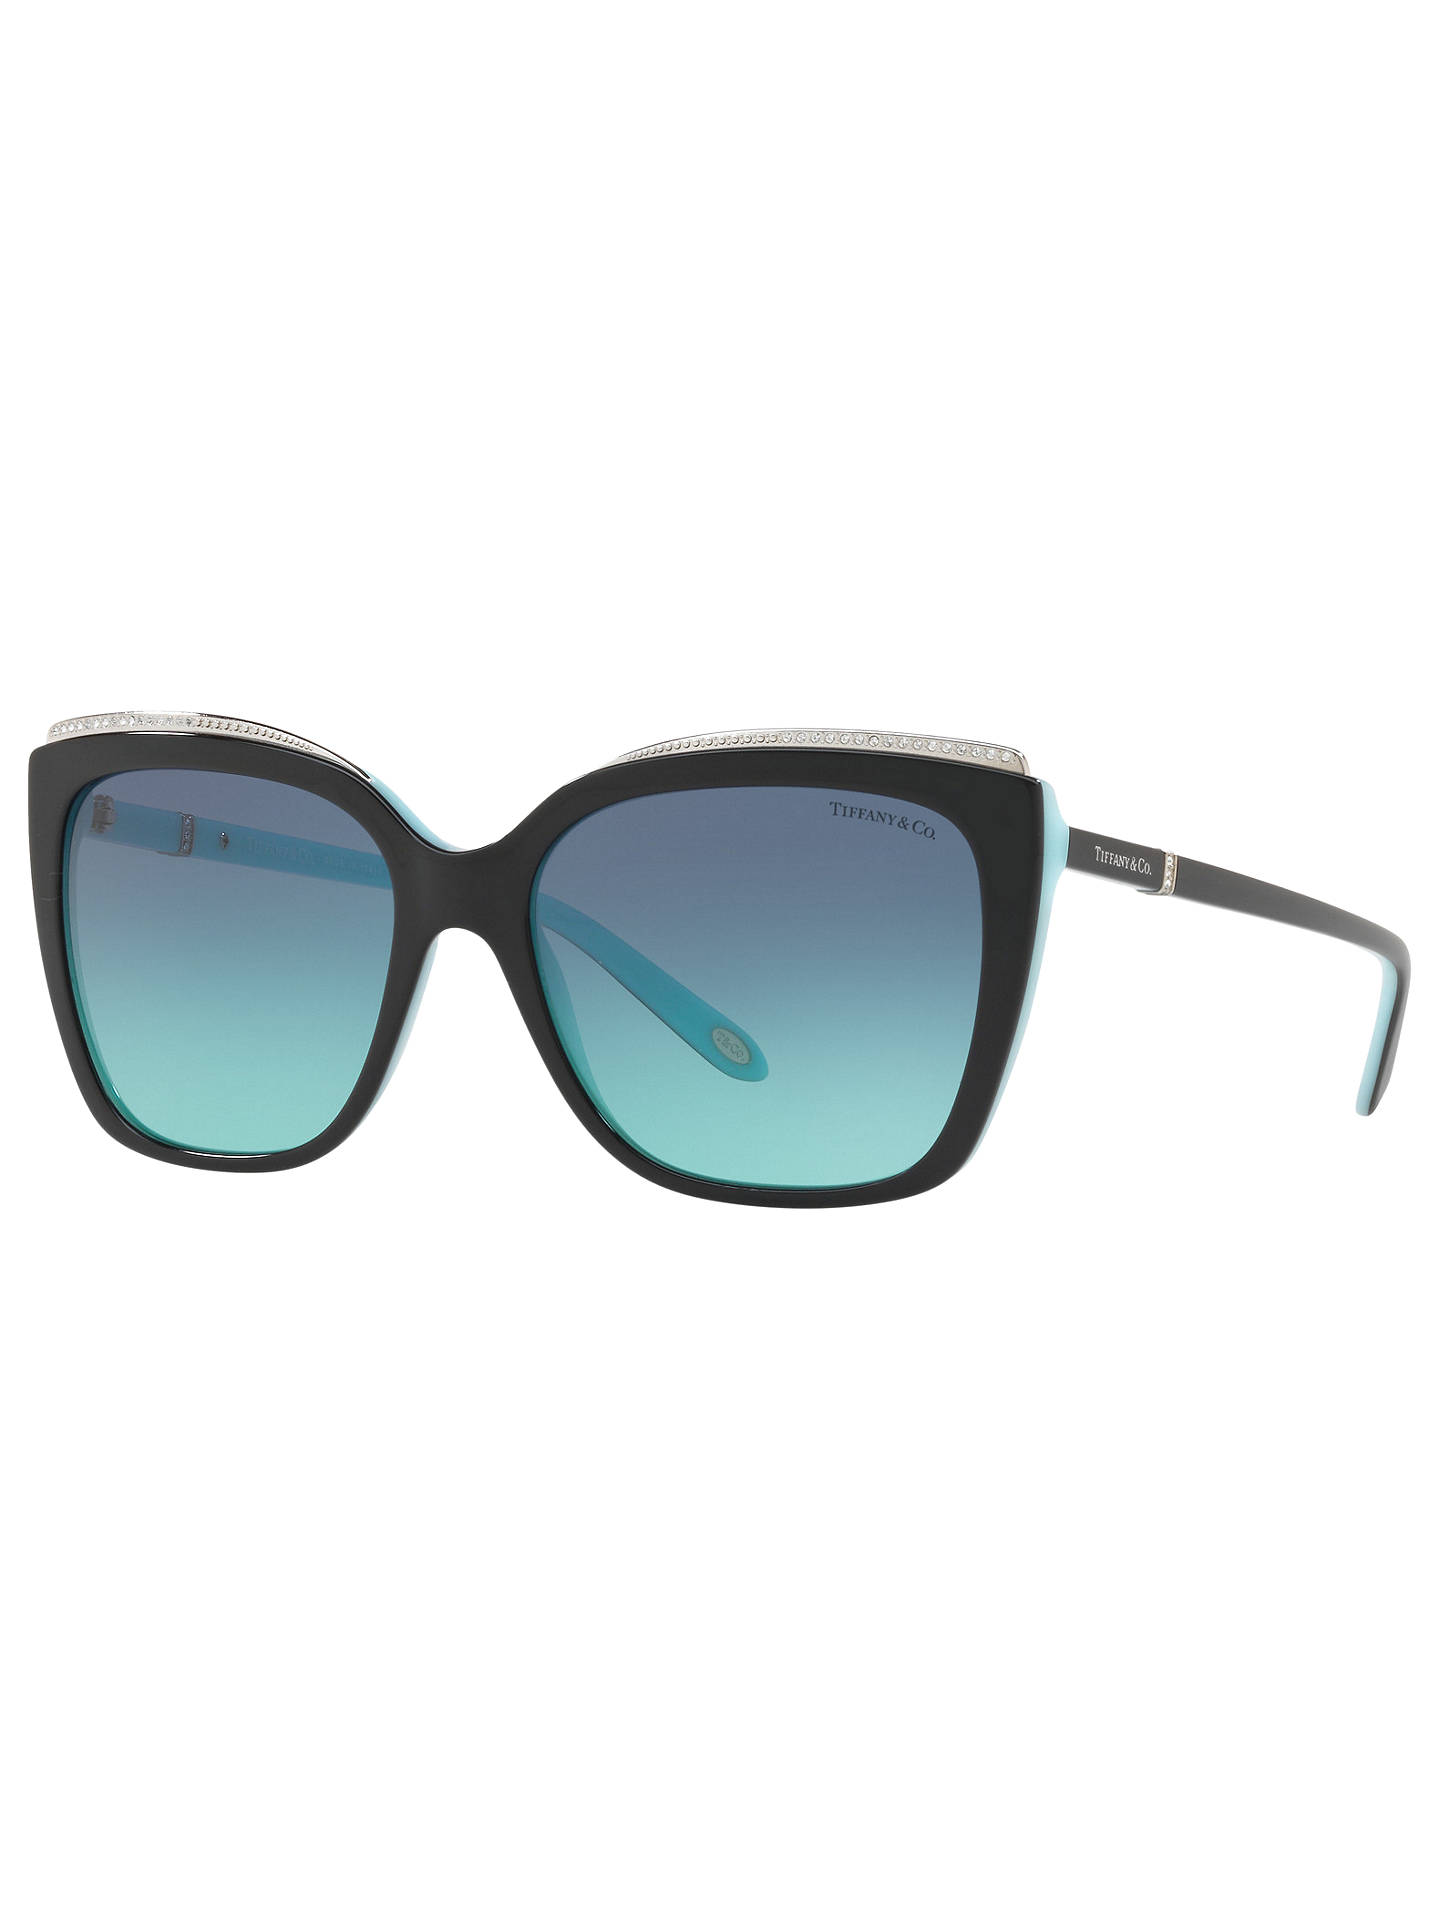 Buy Tiffany & Co TF4135B Oversize Square Sunglasses, Black/Blue Gradient Online at johnlewis.com